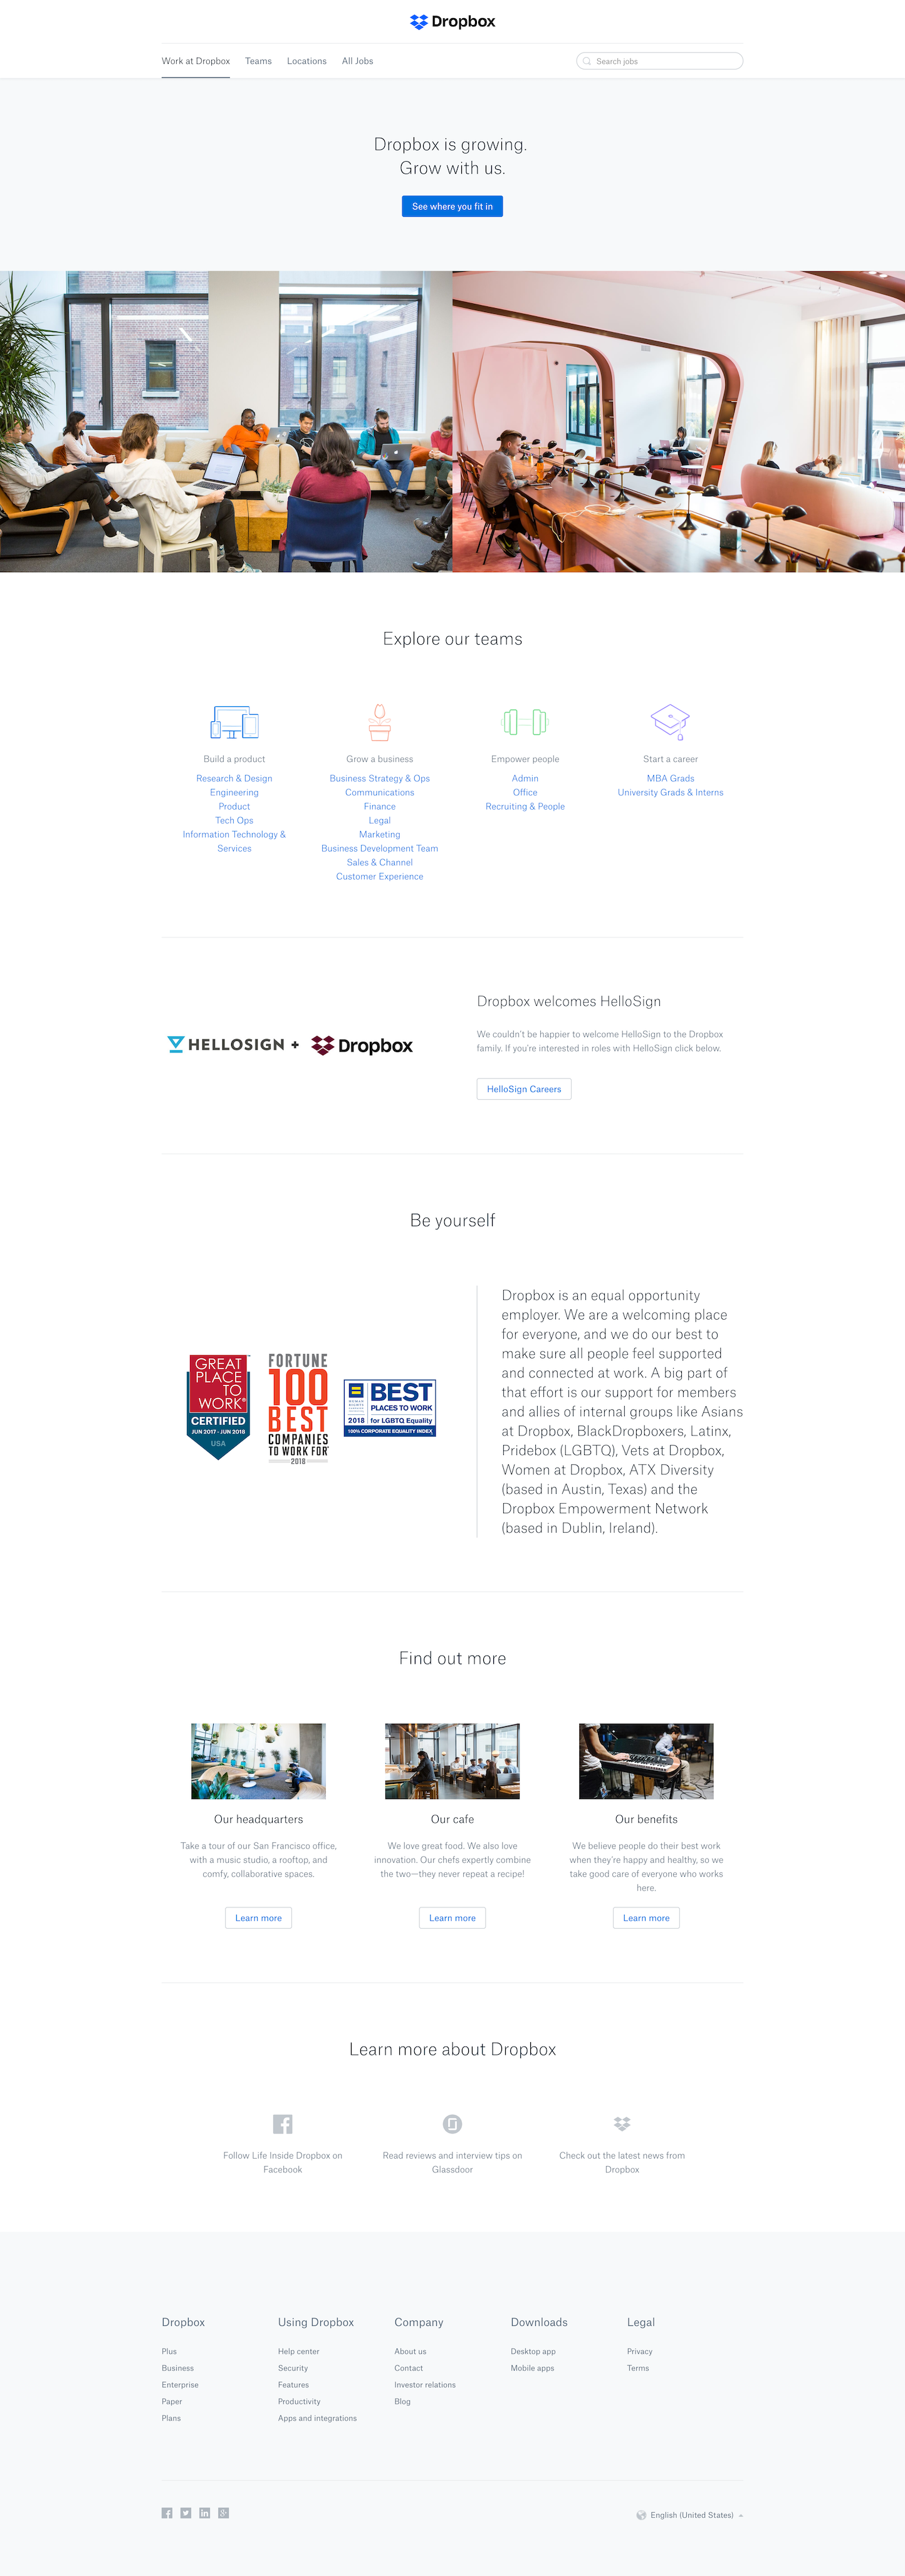 Screenshot of the Jobs page from the Dropbox website.